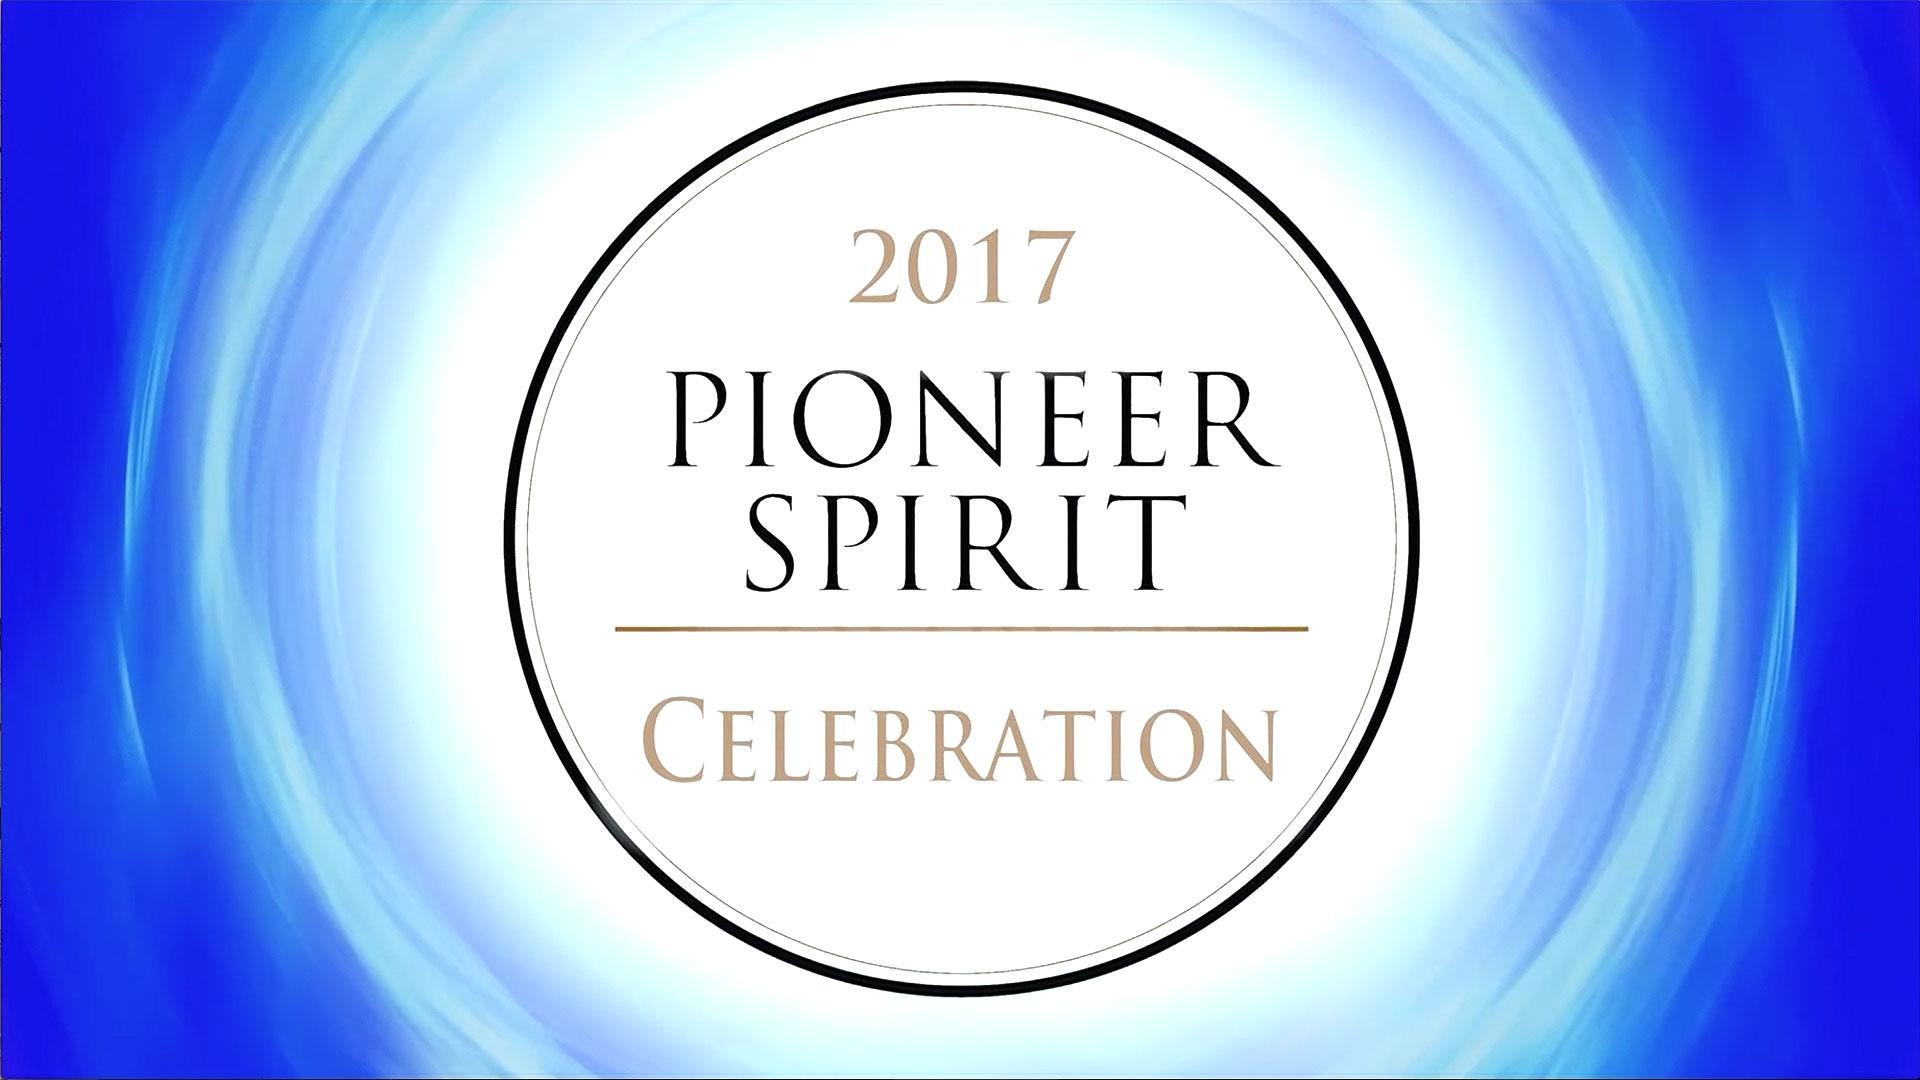 Pioneer Spirit: A Living St. Louis Special